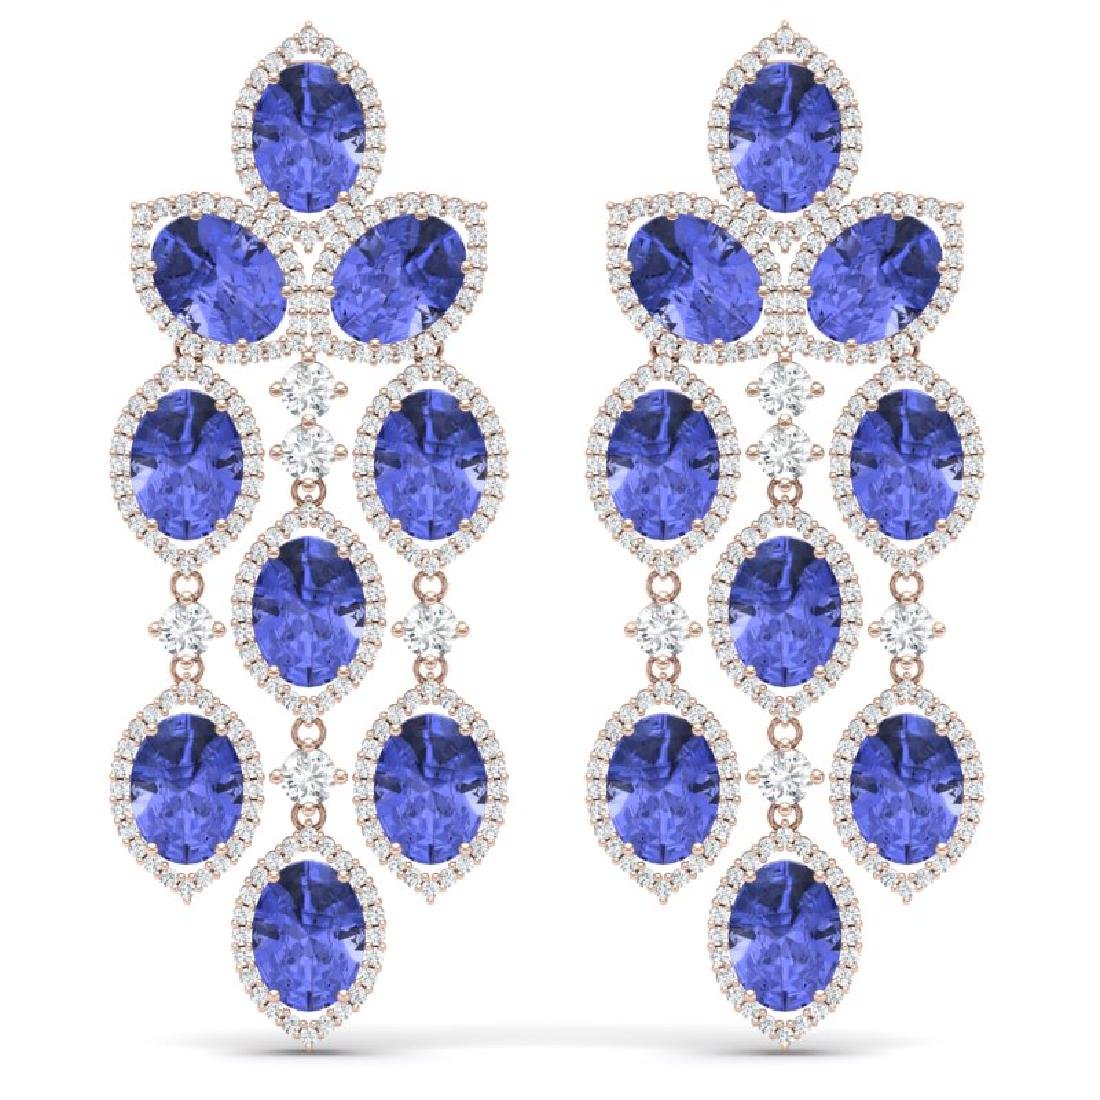 20.53 CTW Royalty Tanzanite & VS Diamond Earrings 18K